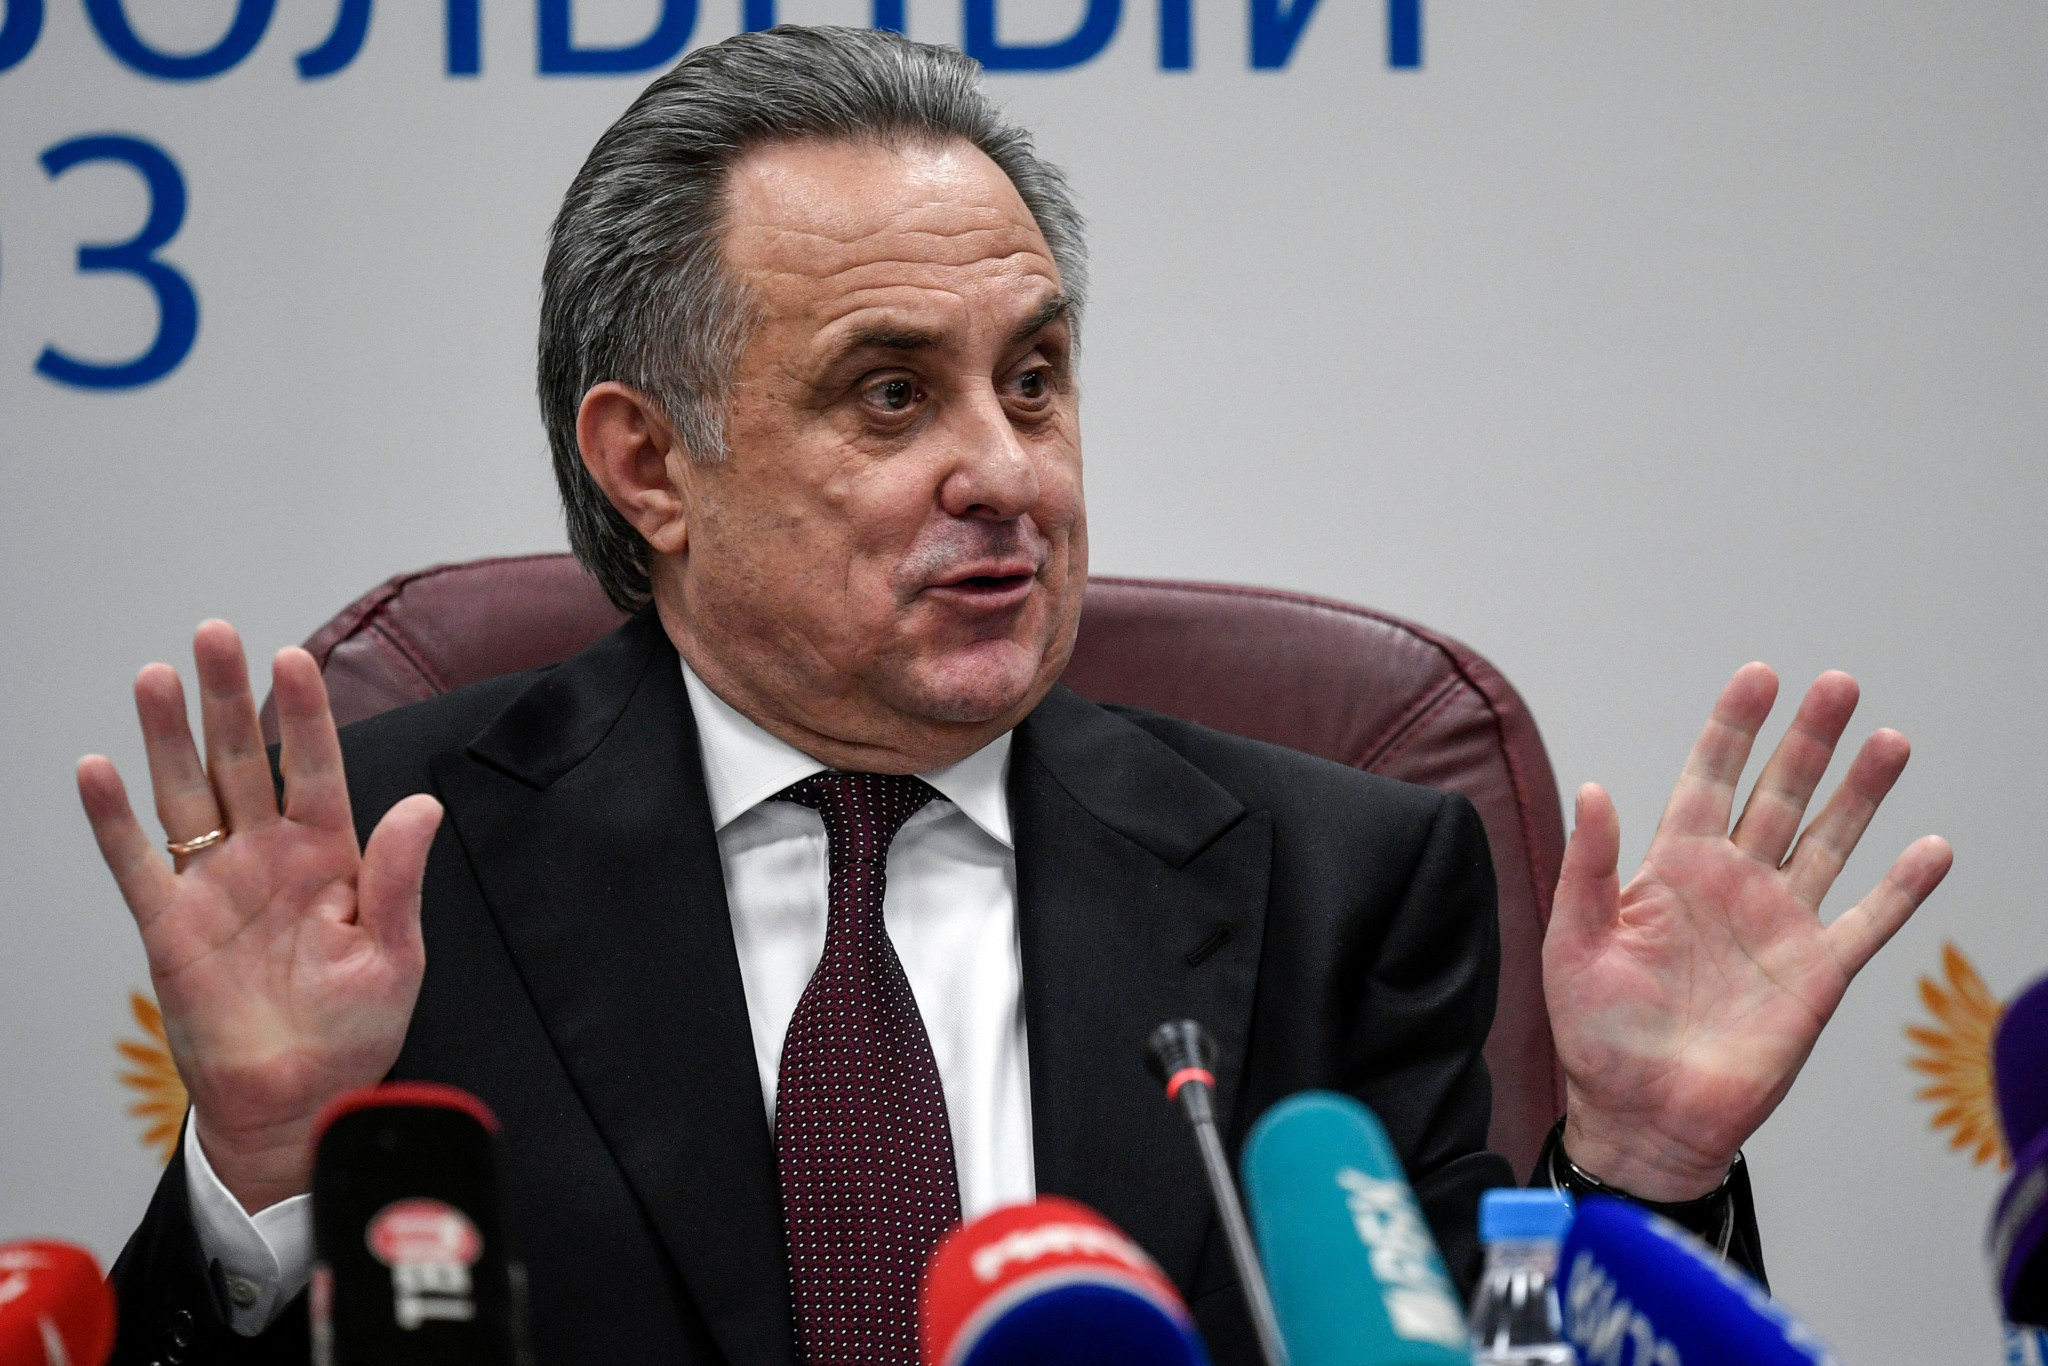 Though it has never been proven, as Sports Minister at the time Vitaly Mutko has been accused of being responsible for the Russian doping scandal ©Getty Images